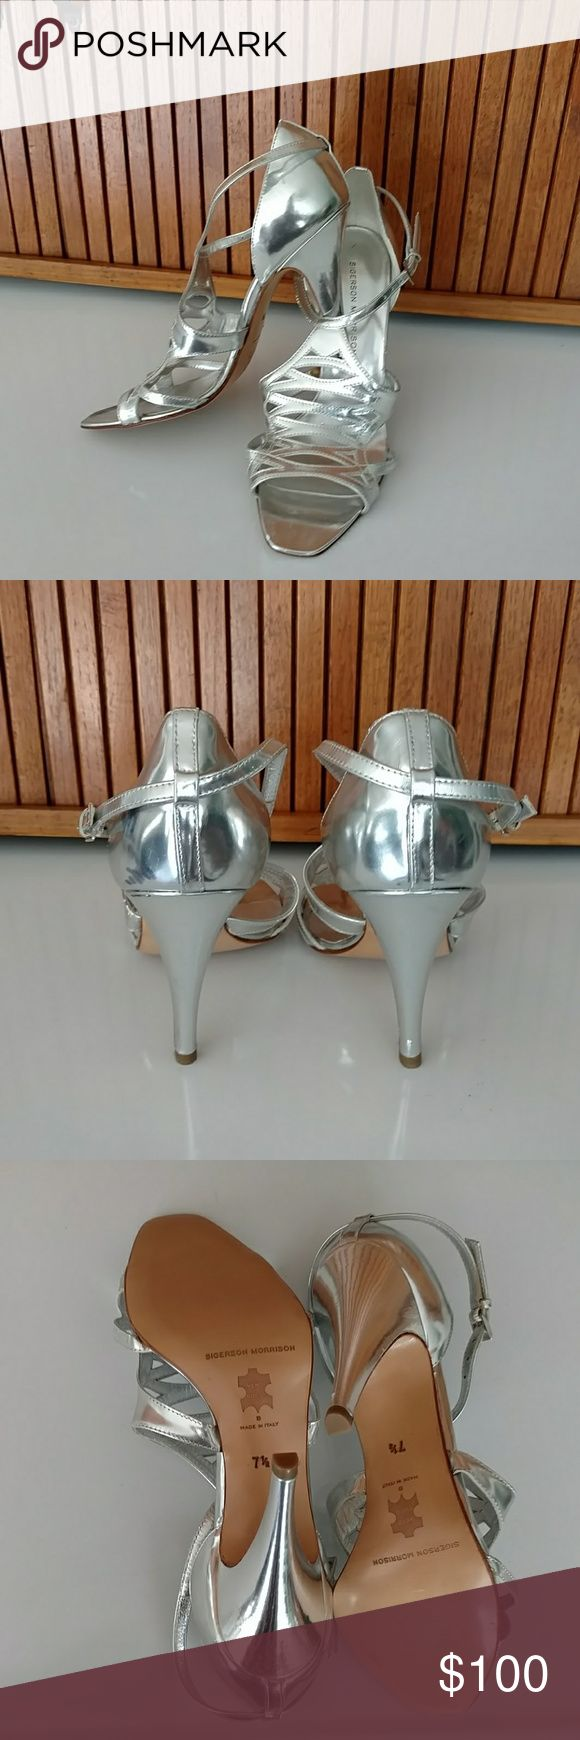 Stunning! Sigerson Morrison Designer Heels * Beautiful and mirror like silver Sigerson Morrison heels made in Italy. Size 7.5 worn only one time. * Note the last photo shows a scuff above the heel, I have not tried to clean. Gorgeous shoes!! Sigerson Morrison Shoes